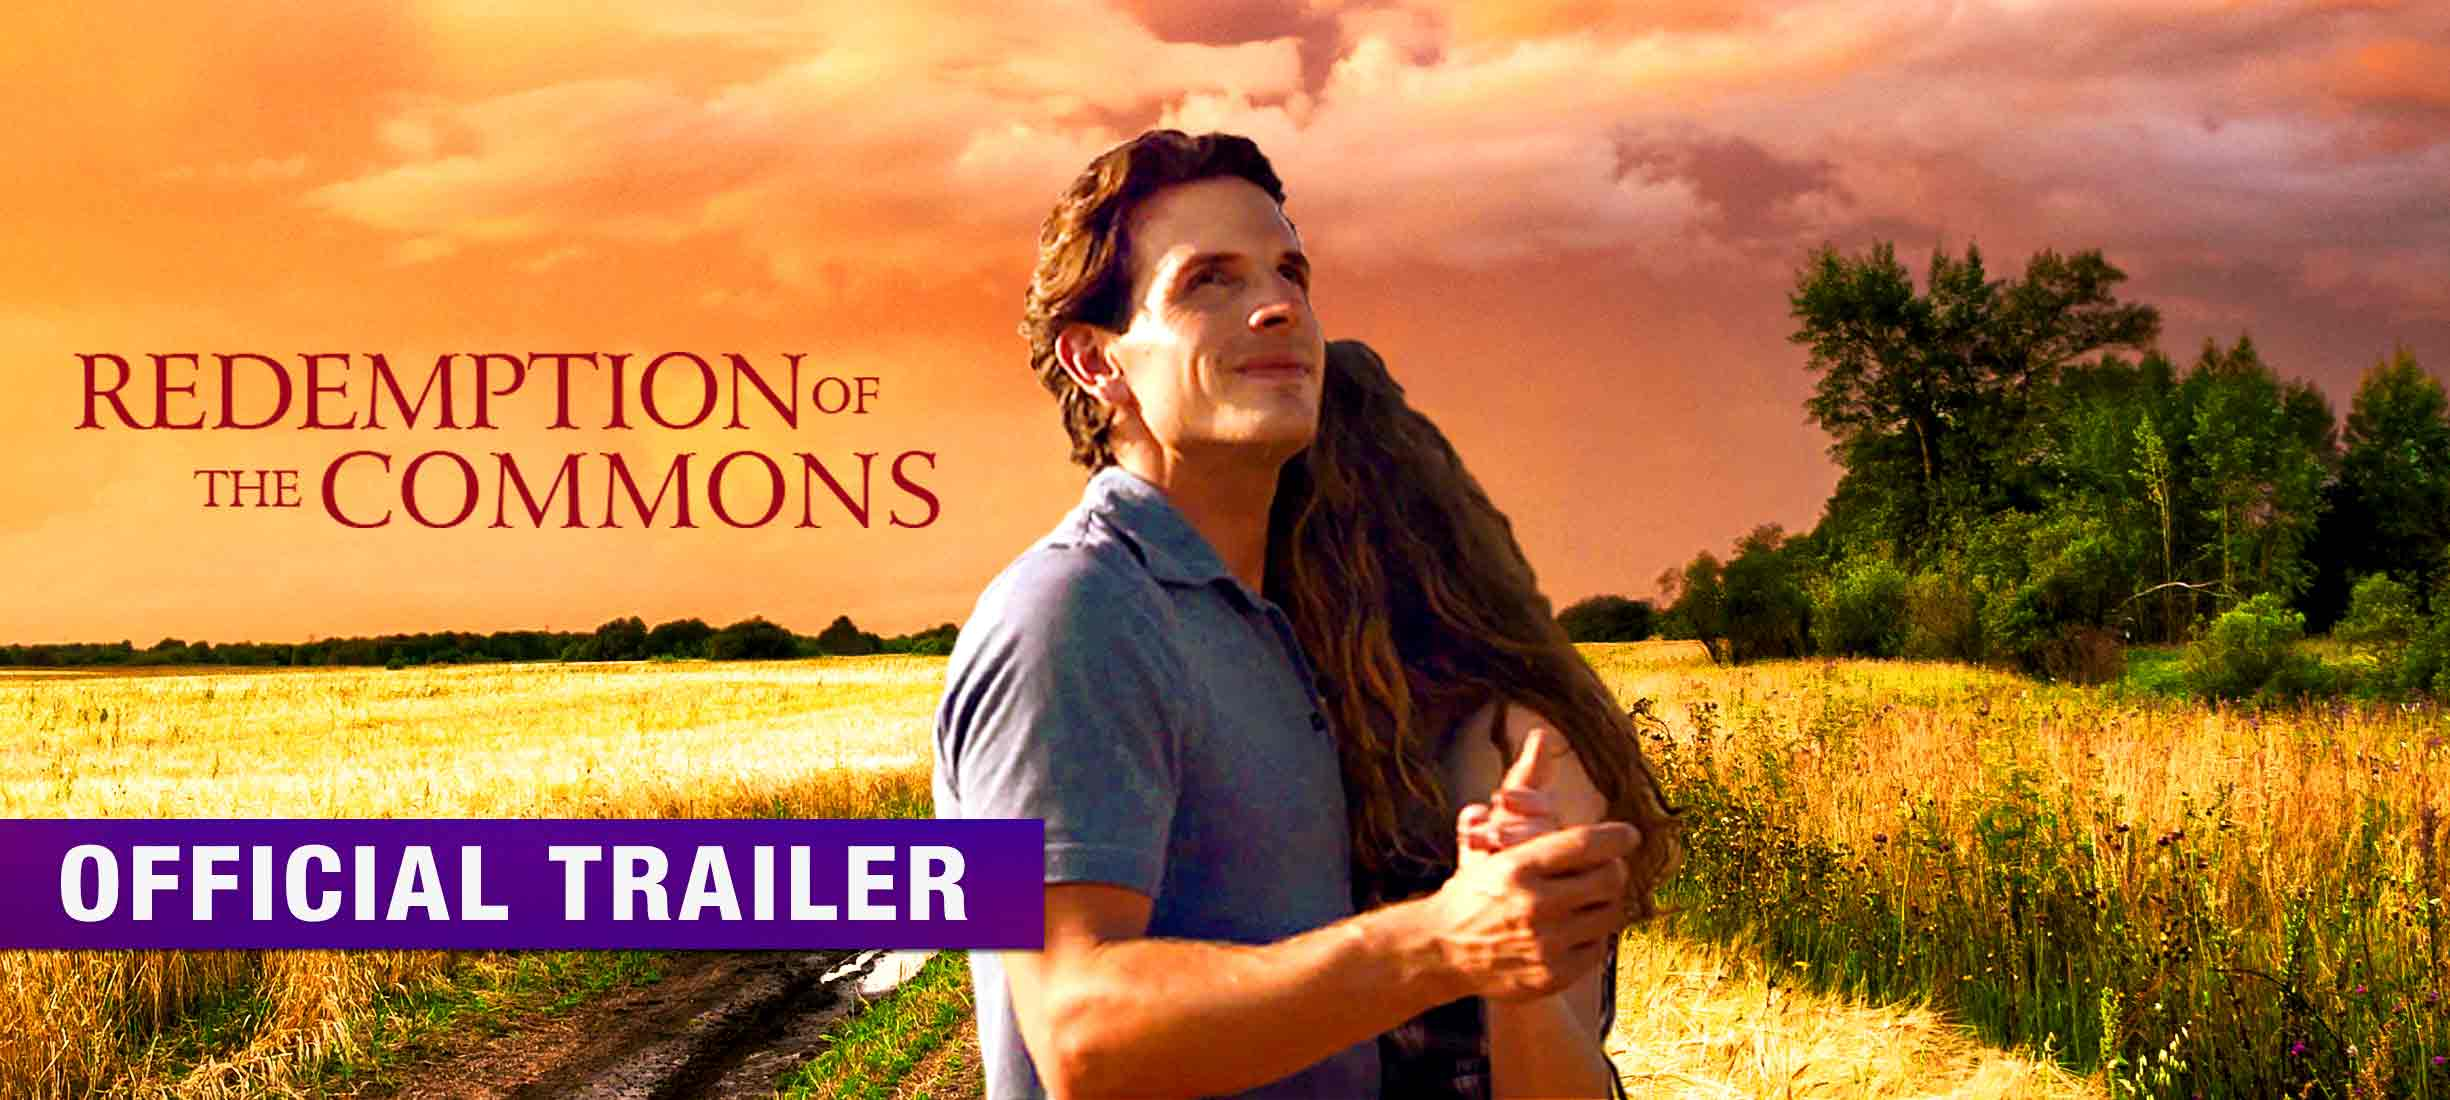 Redemption of the Commons: Official Trailer